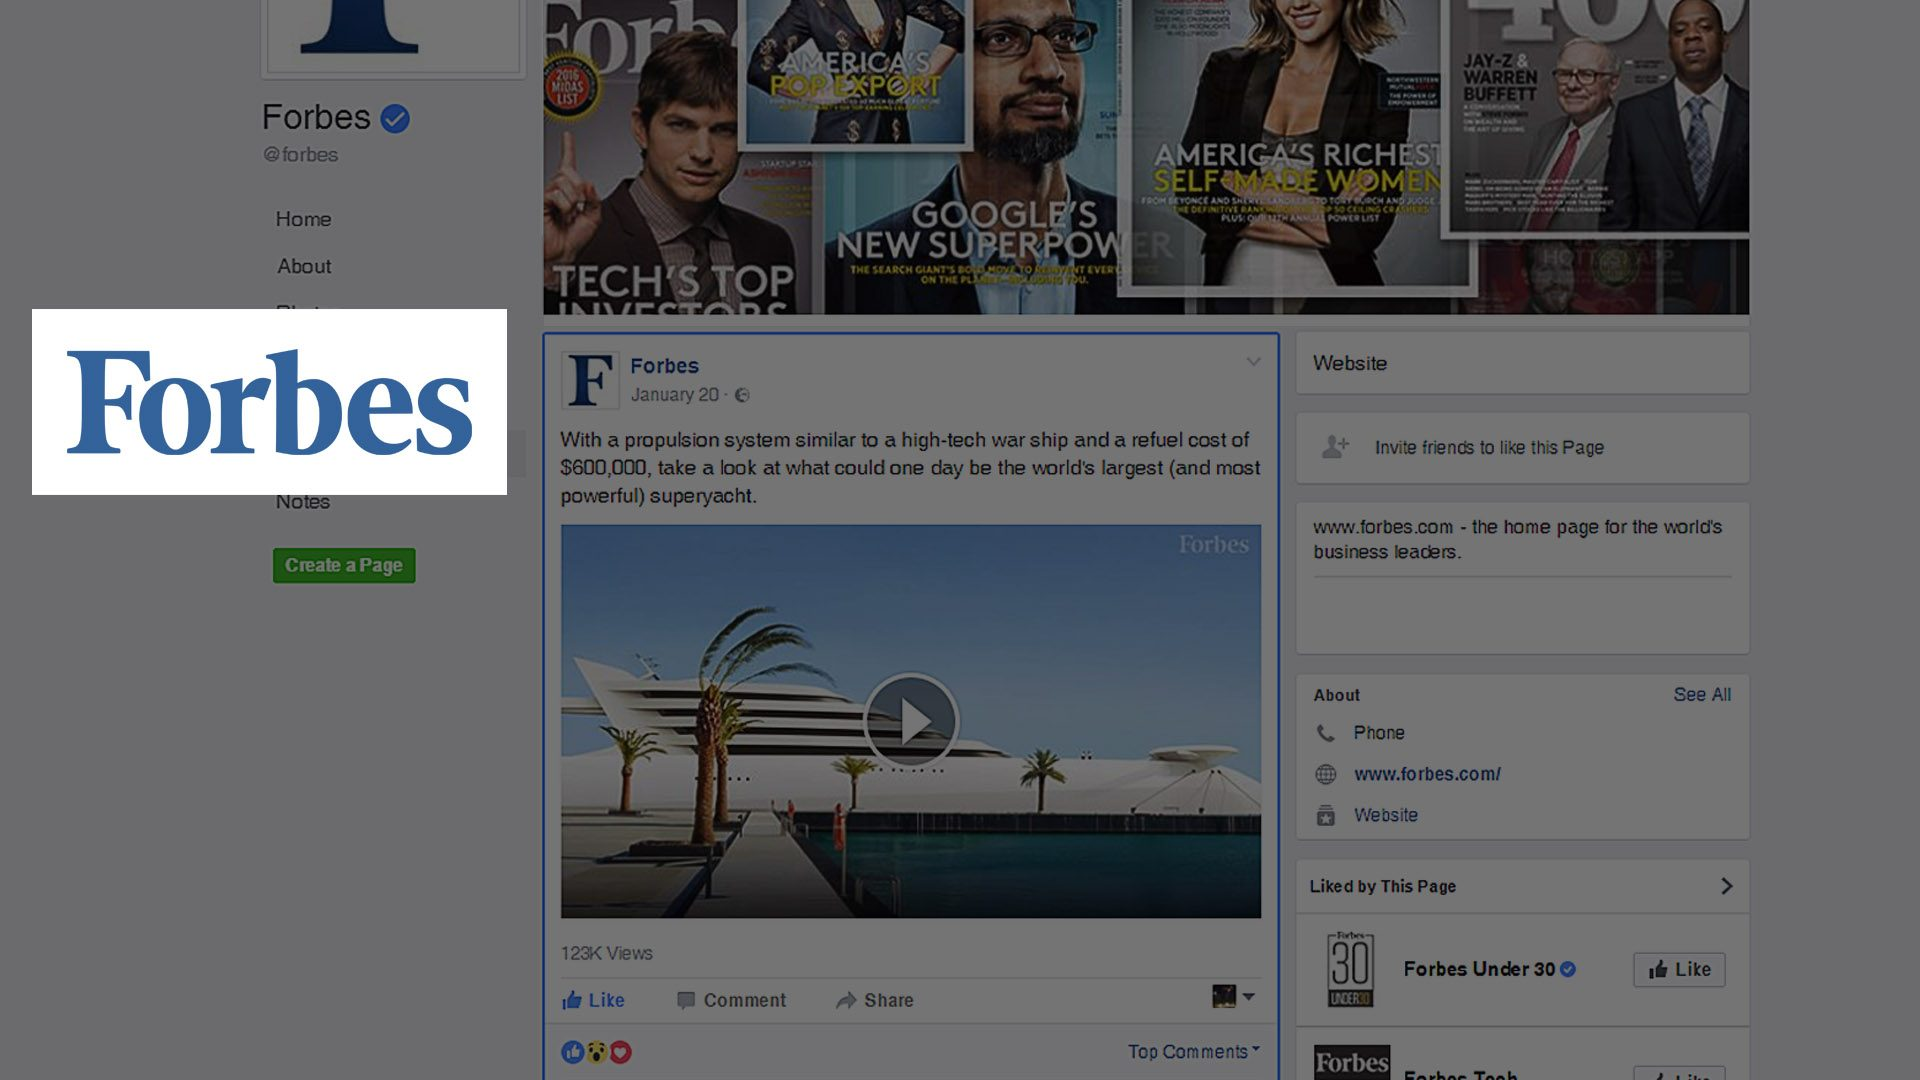 Forbes magazine video on Hamid Bekradi's design, the visionary superyacht L'Amage featured on Facebook